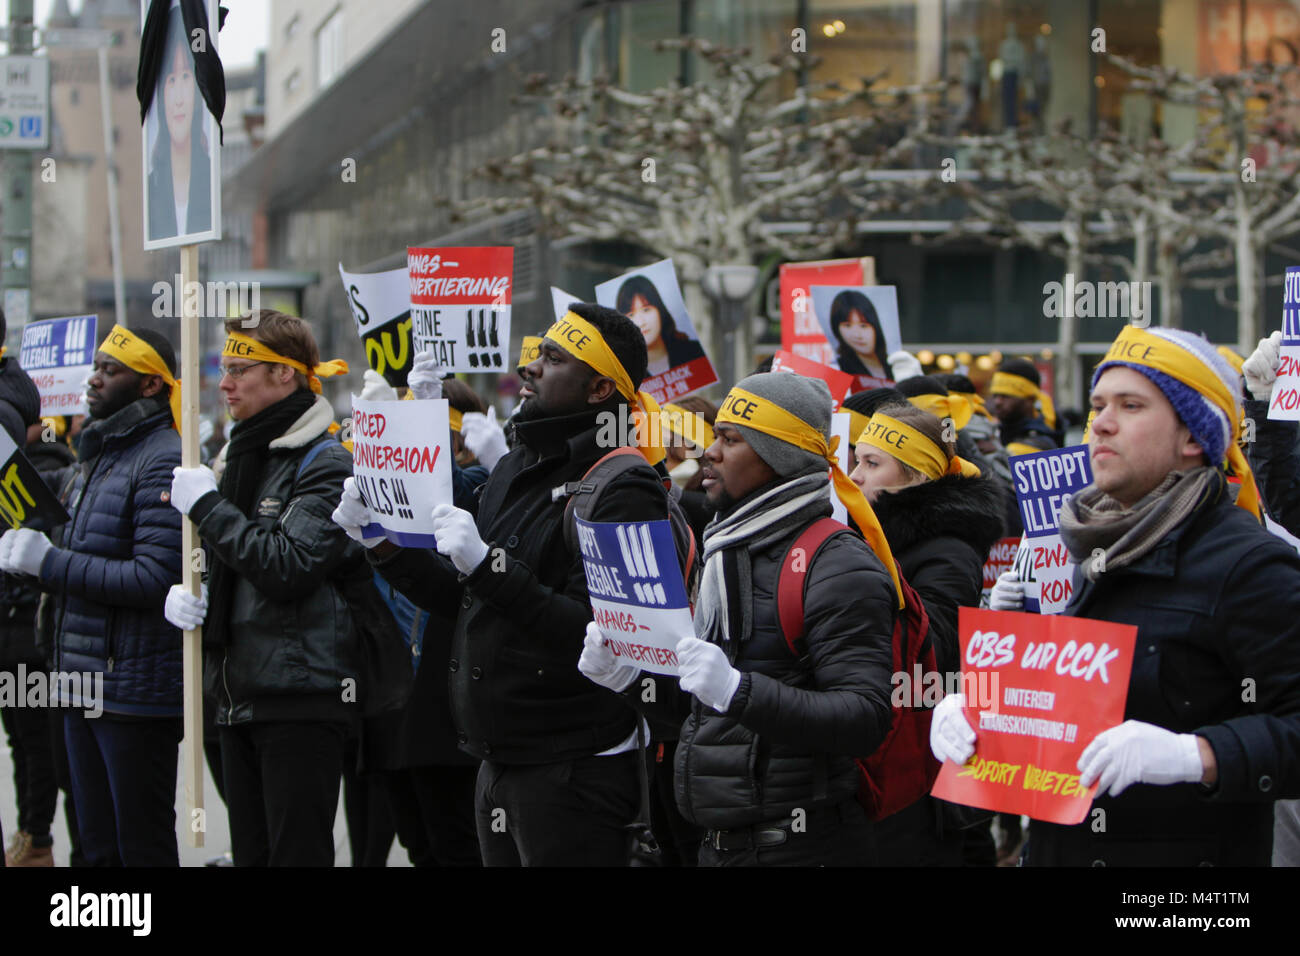 Frankfurt, Germany. 17th February 2018. Sympathisers of the Human Rights Association for Forced holds up signs that Stock Photo